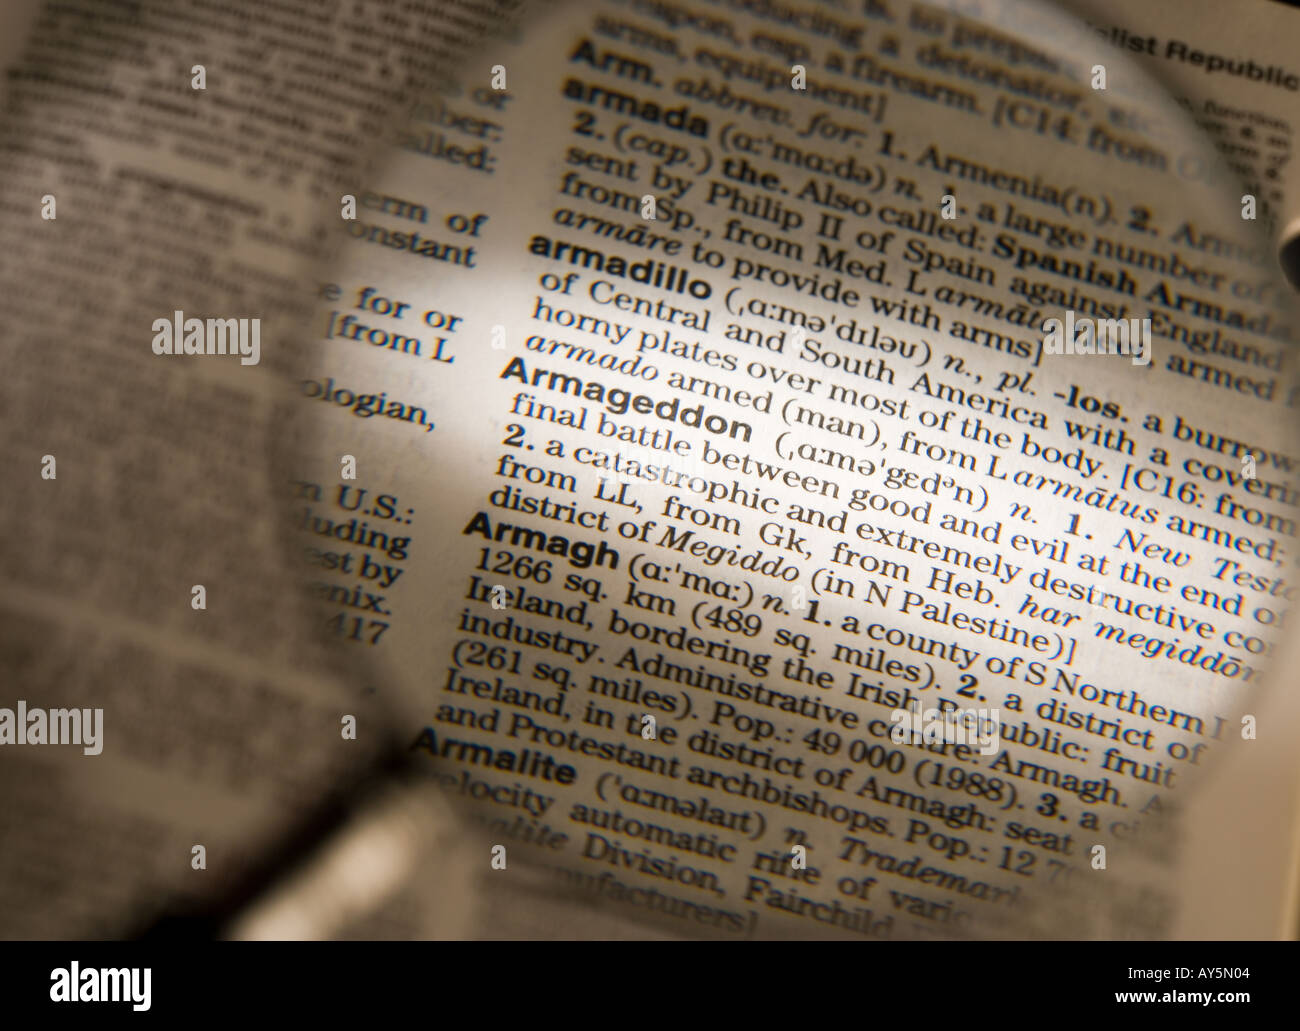 MAGNIFYING GLASS ON DICTIONARY PAGE SHOWING DEFINITION OF THE WORD ARMAGEDDON - Stock Image